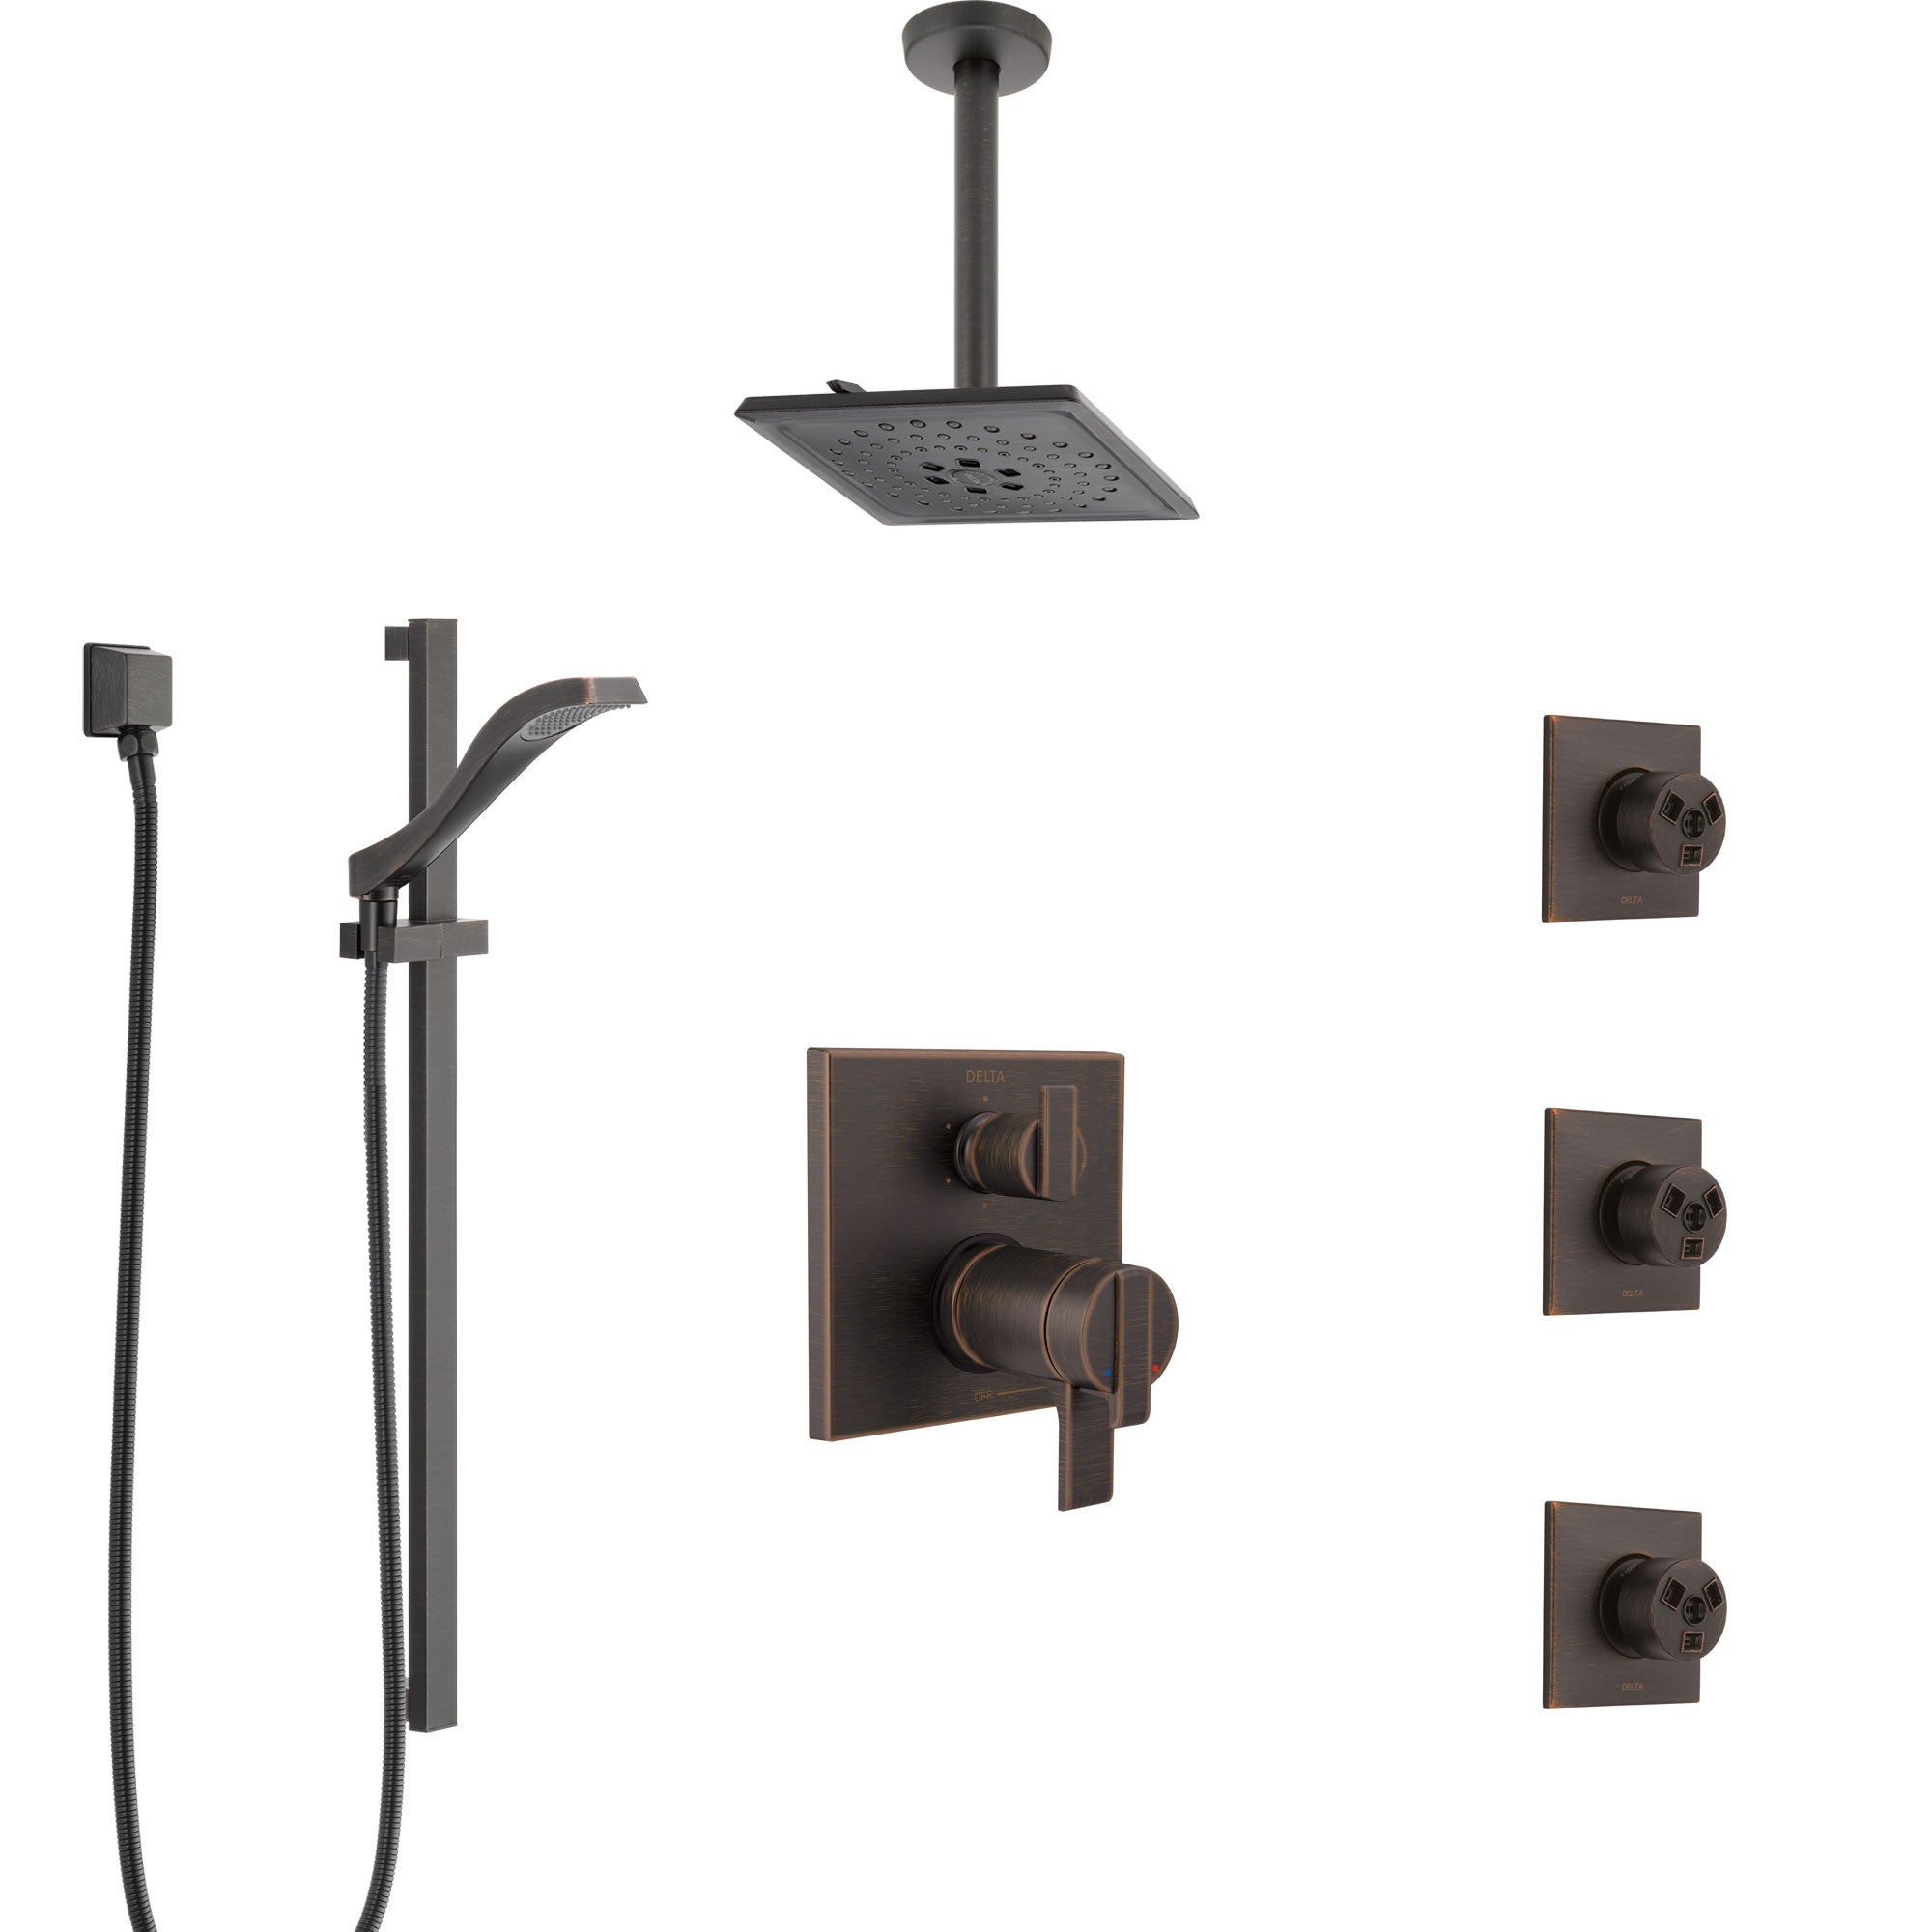 Delta Ara Venetian Bronze Dual Thermostatic Control Integrated Diverter Shower System, Ceiling Showerhead, 3 Body Sprays, and Hand Shower SS27T967RB5